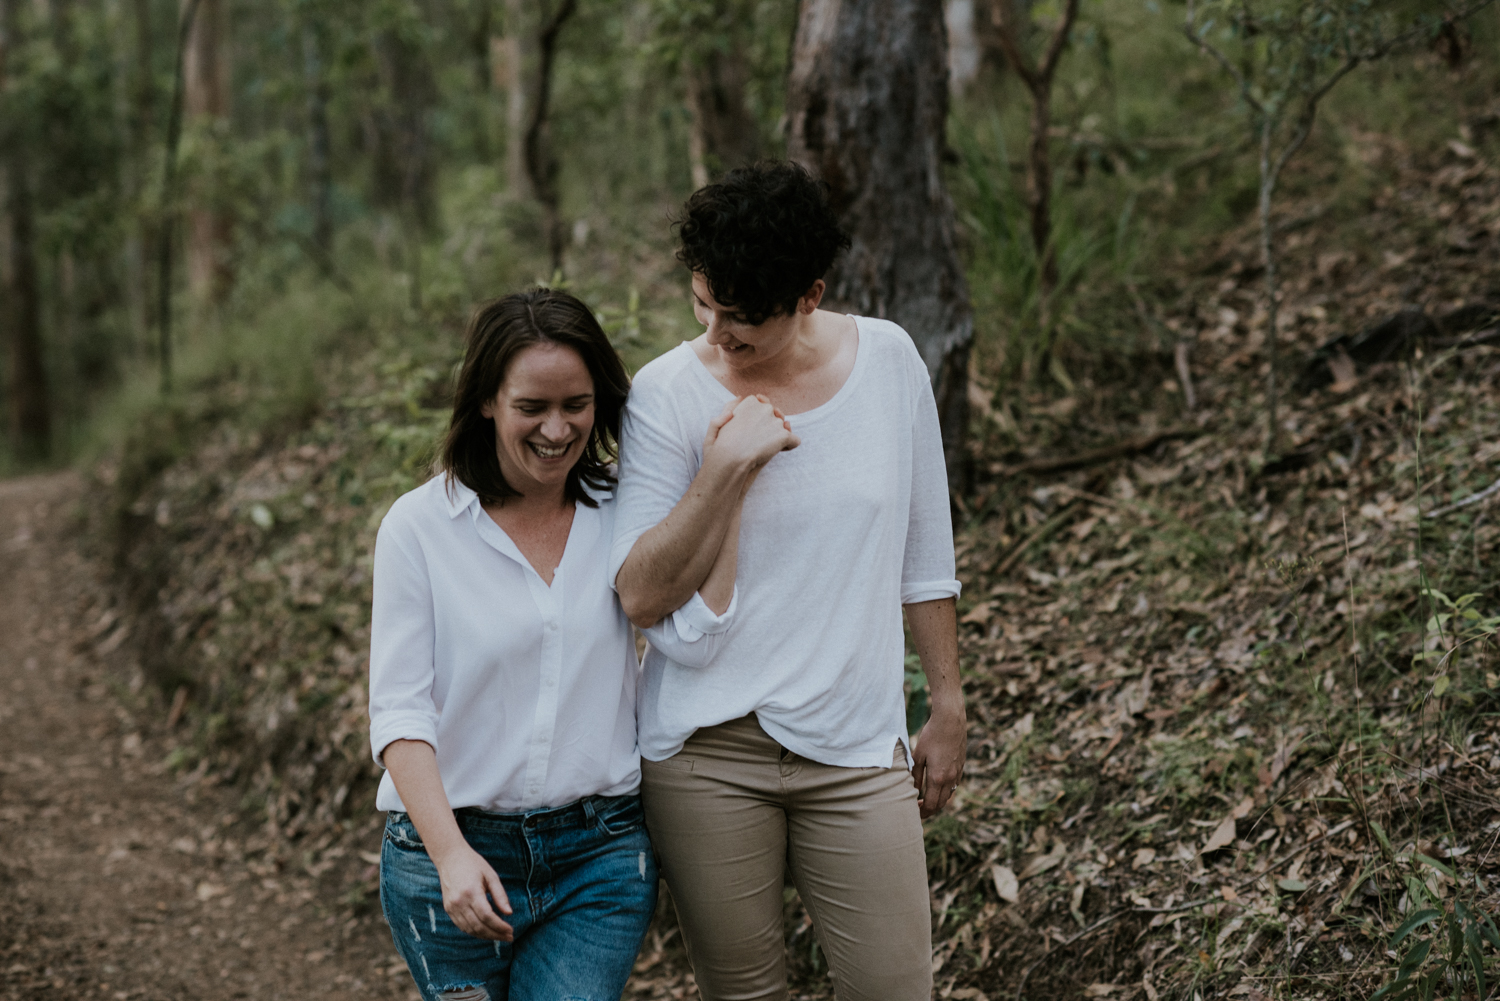 Brisbane Lesbian Wedding Photographer | Same-Sex Engagement-Elopement Photography-11.jpg